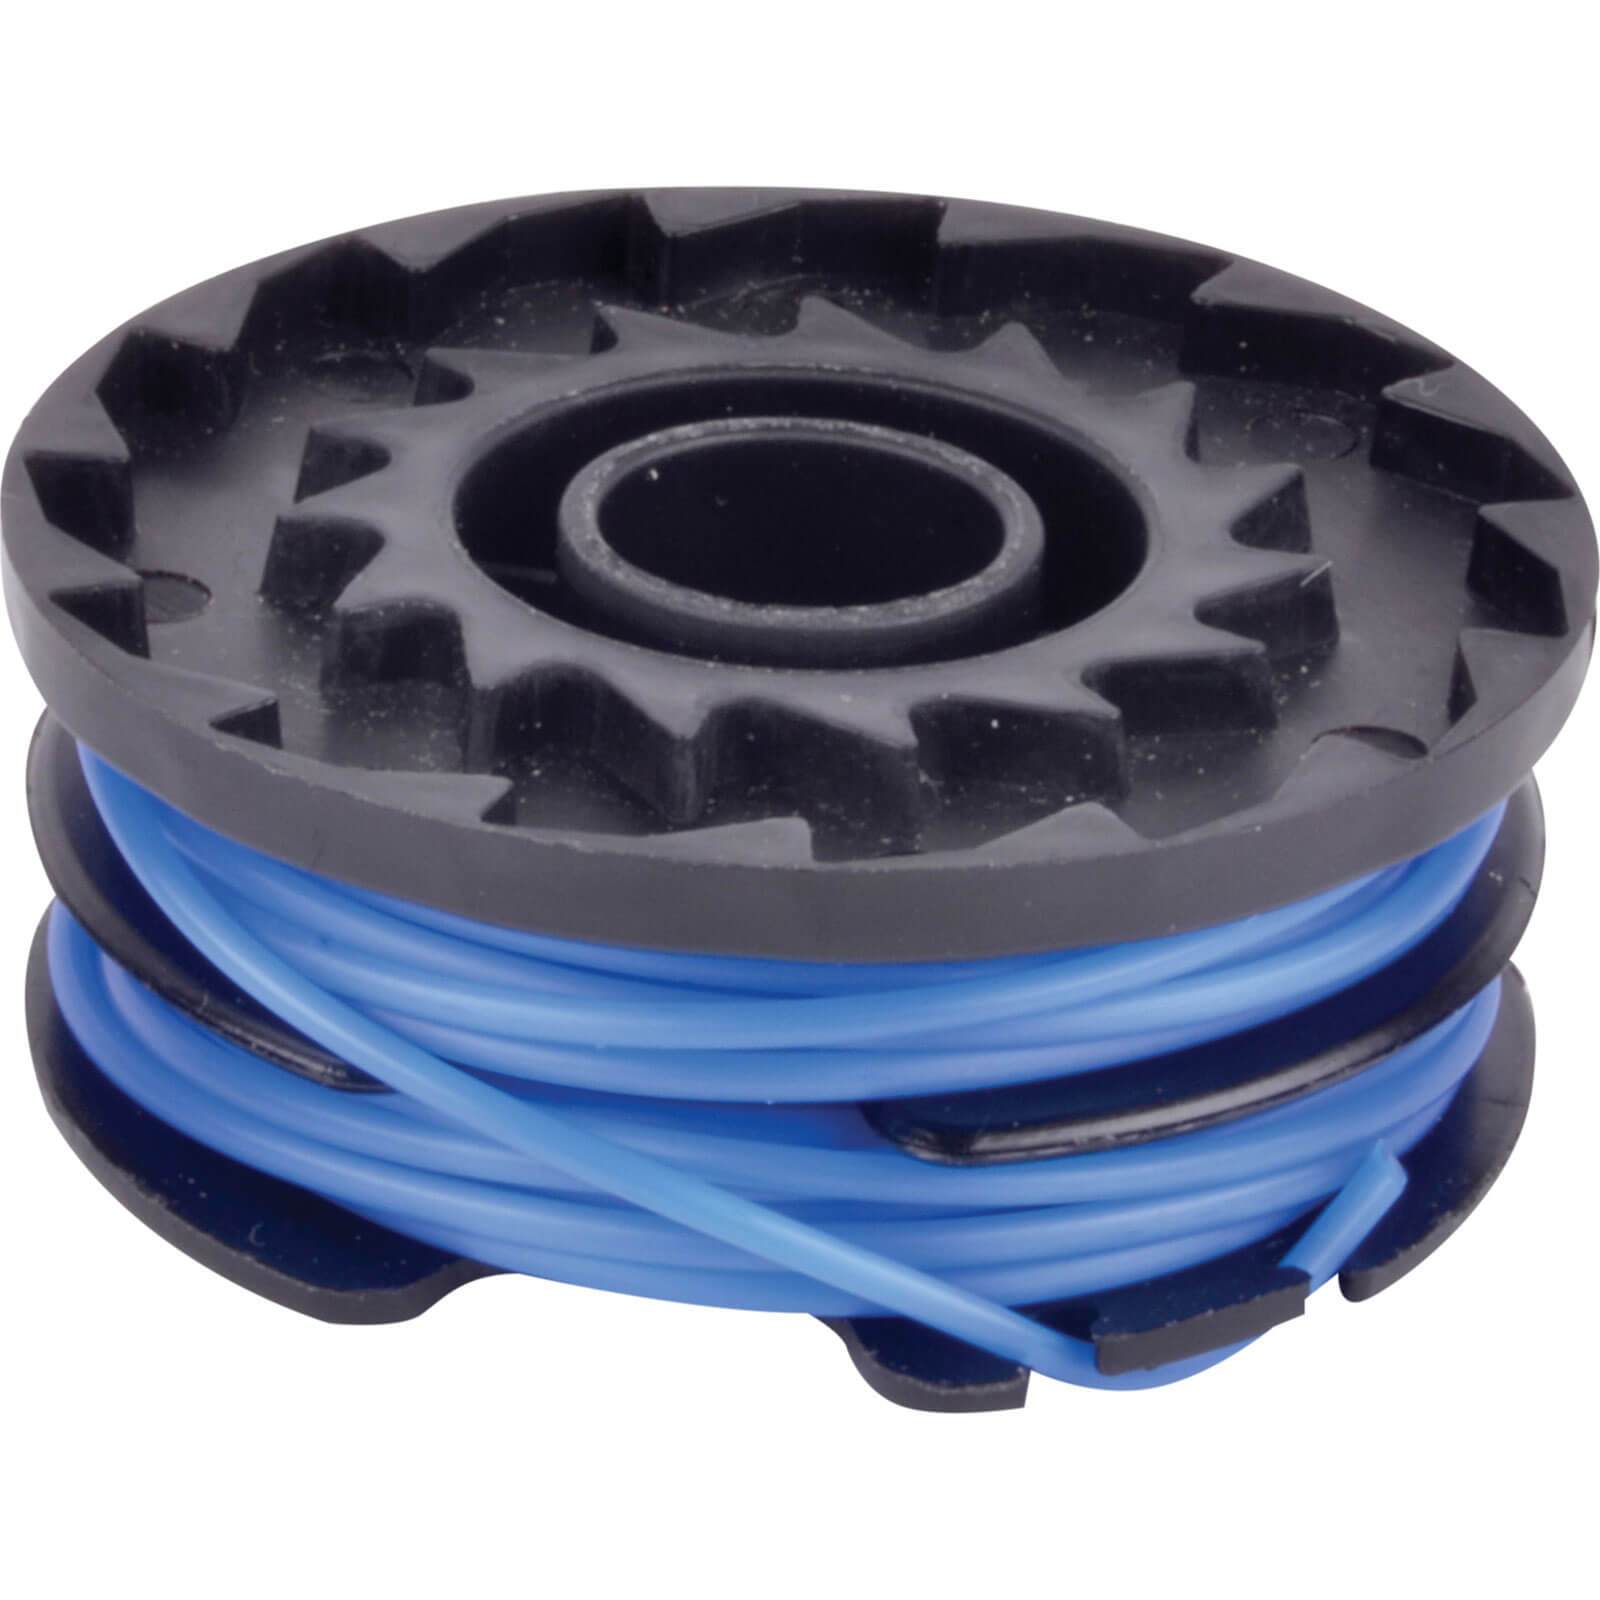 Image of ALM 1.5mm x 3m Spool & Line for Ryobi RLT4025 Grass Trimmer Pack of 1